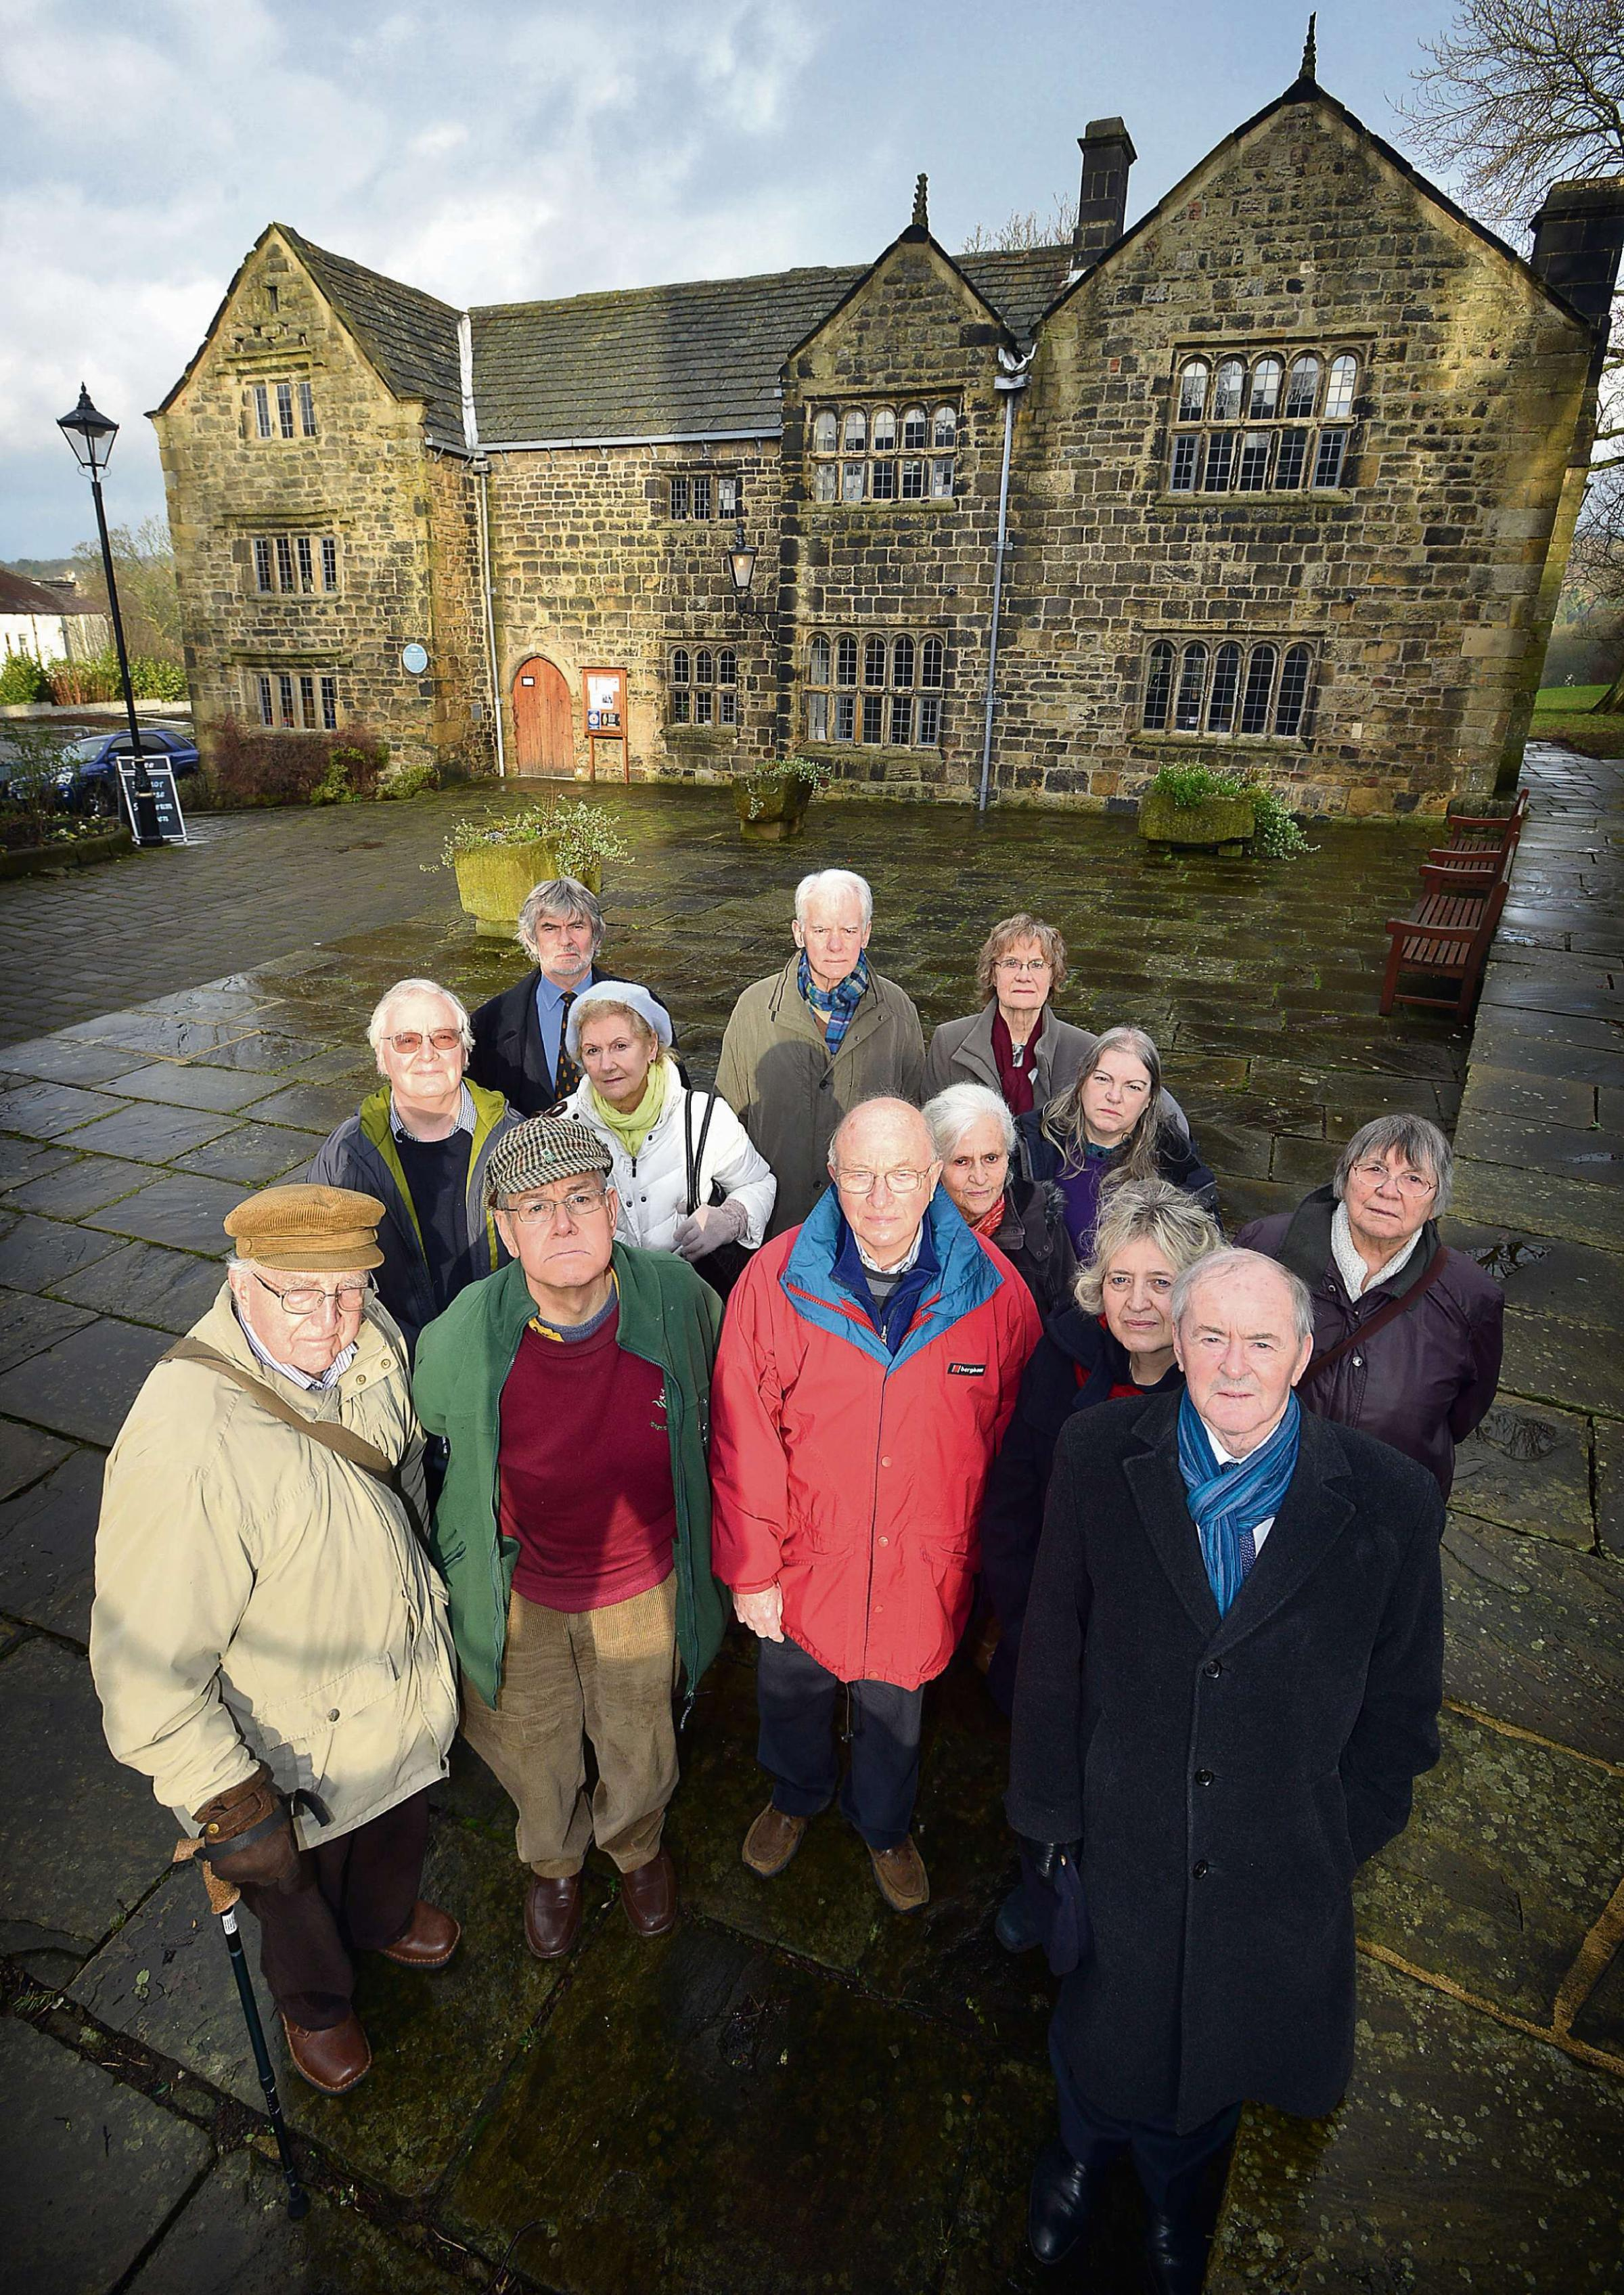 Cash-strapped Council plans to hand over Ilkley museum to community